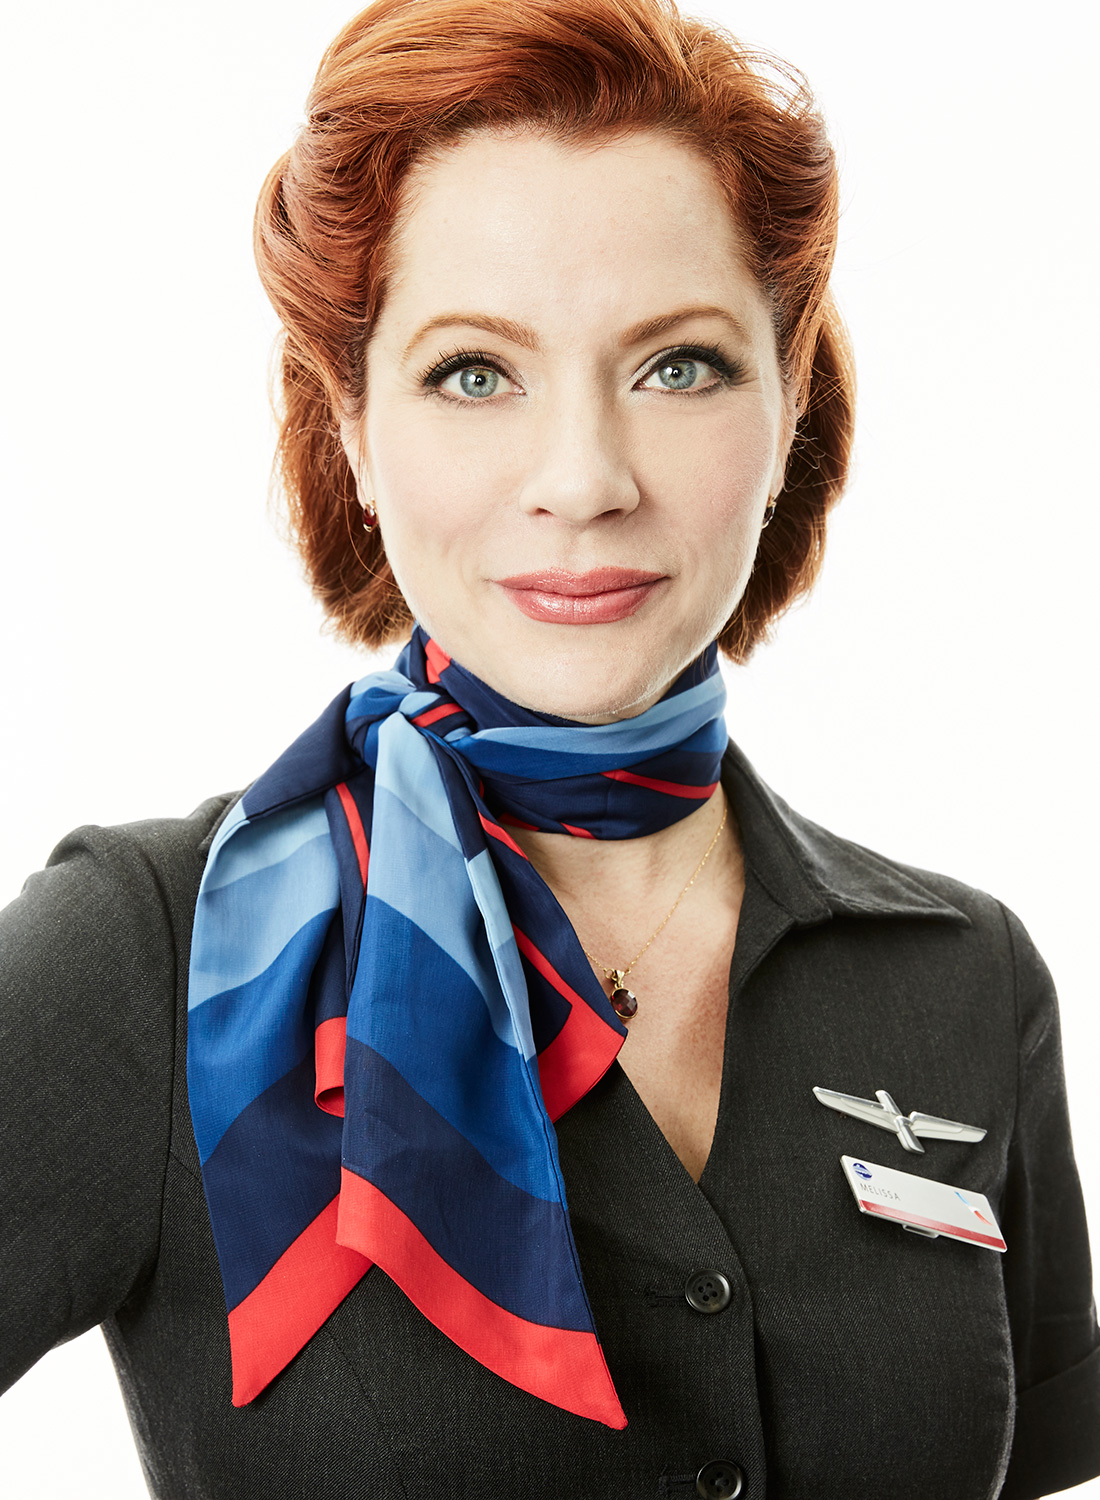 160920_AmericanAirlines_Portraits_By_BriJohnson_0009.jpg